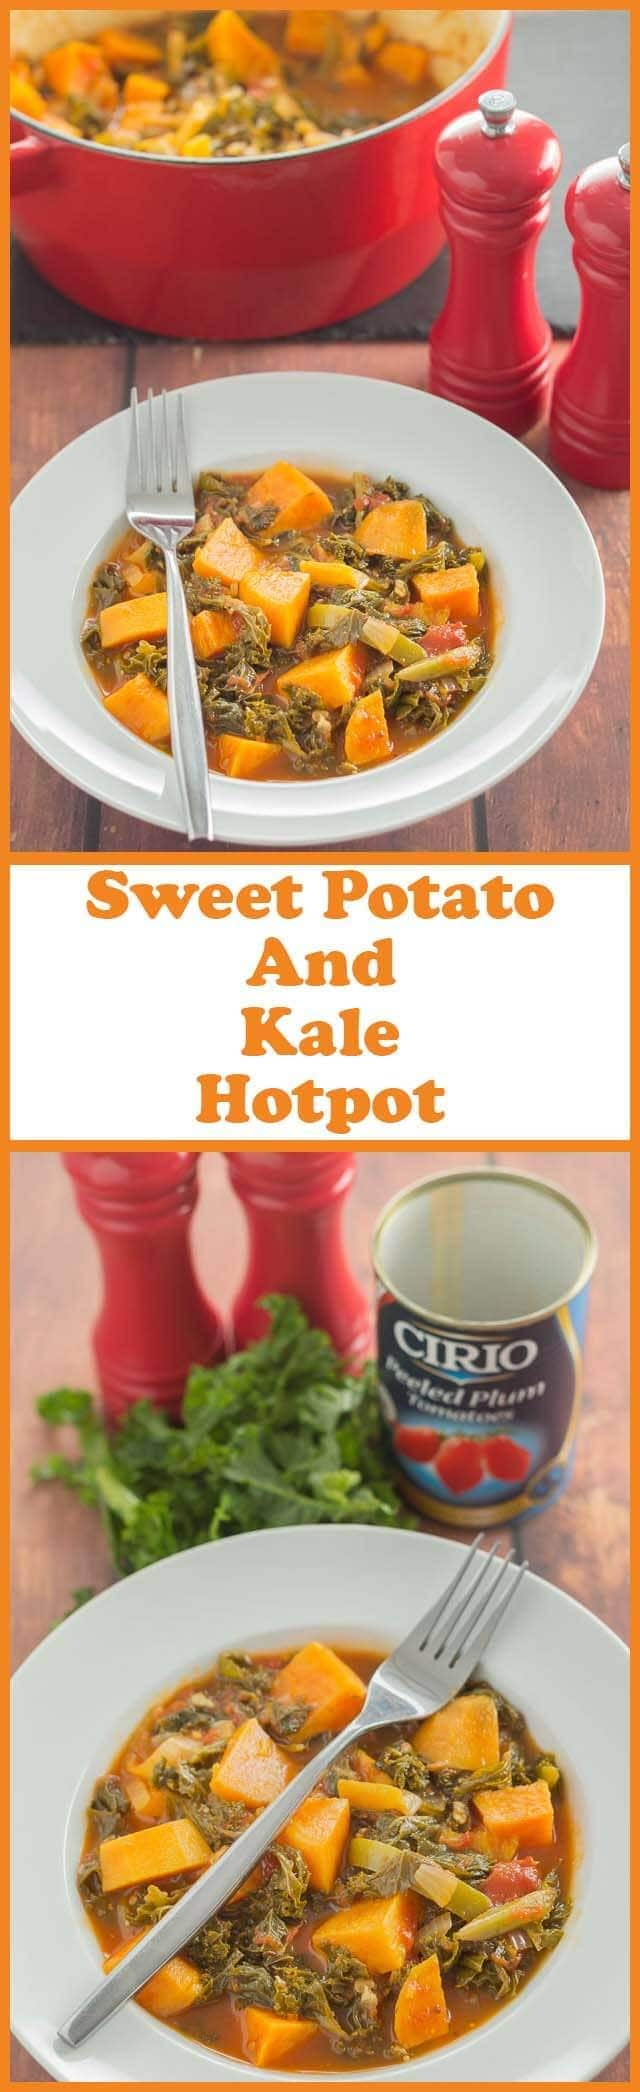 Sweet potato and kale hotpot is a quick, hearty all in one healthy meal. It's perfect for winter as you'll find this low cost vegan stew is packed full of vitamins that help keep colds and flu away!